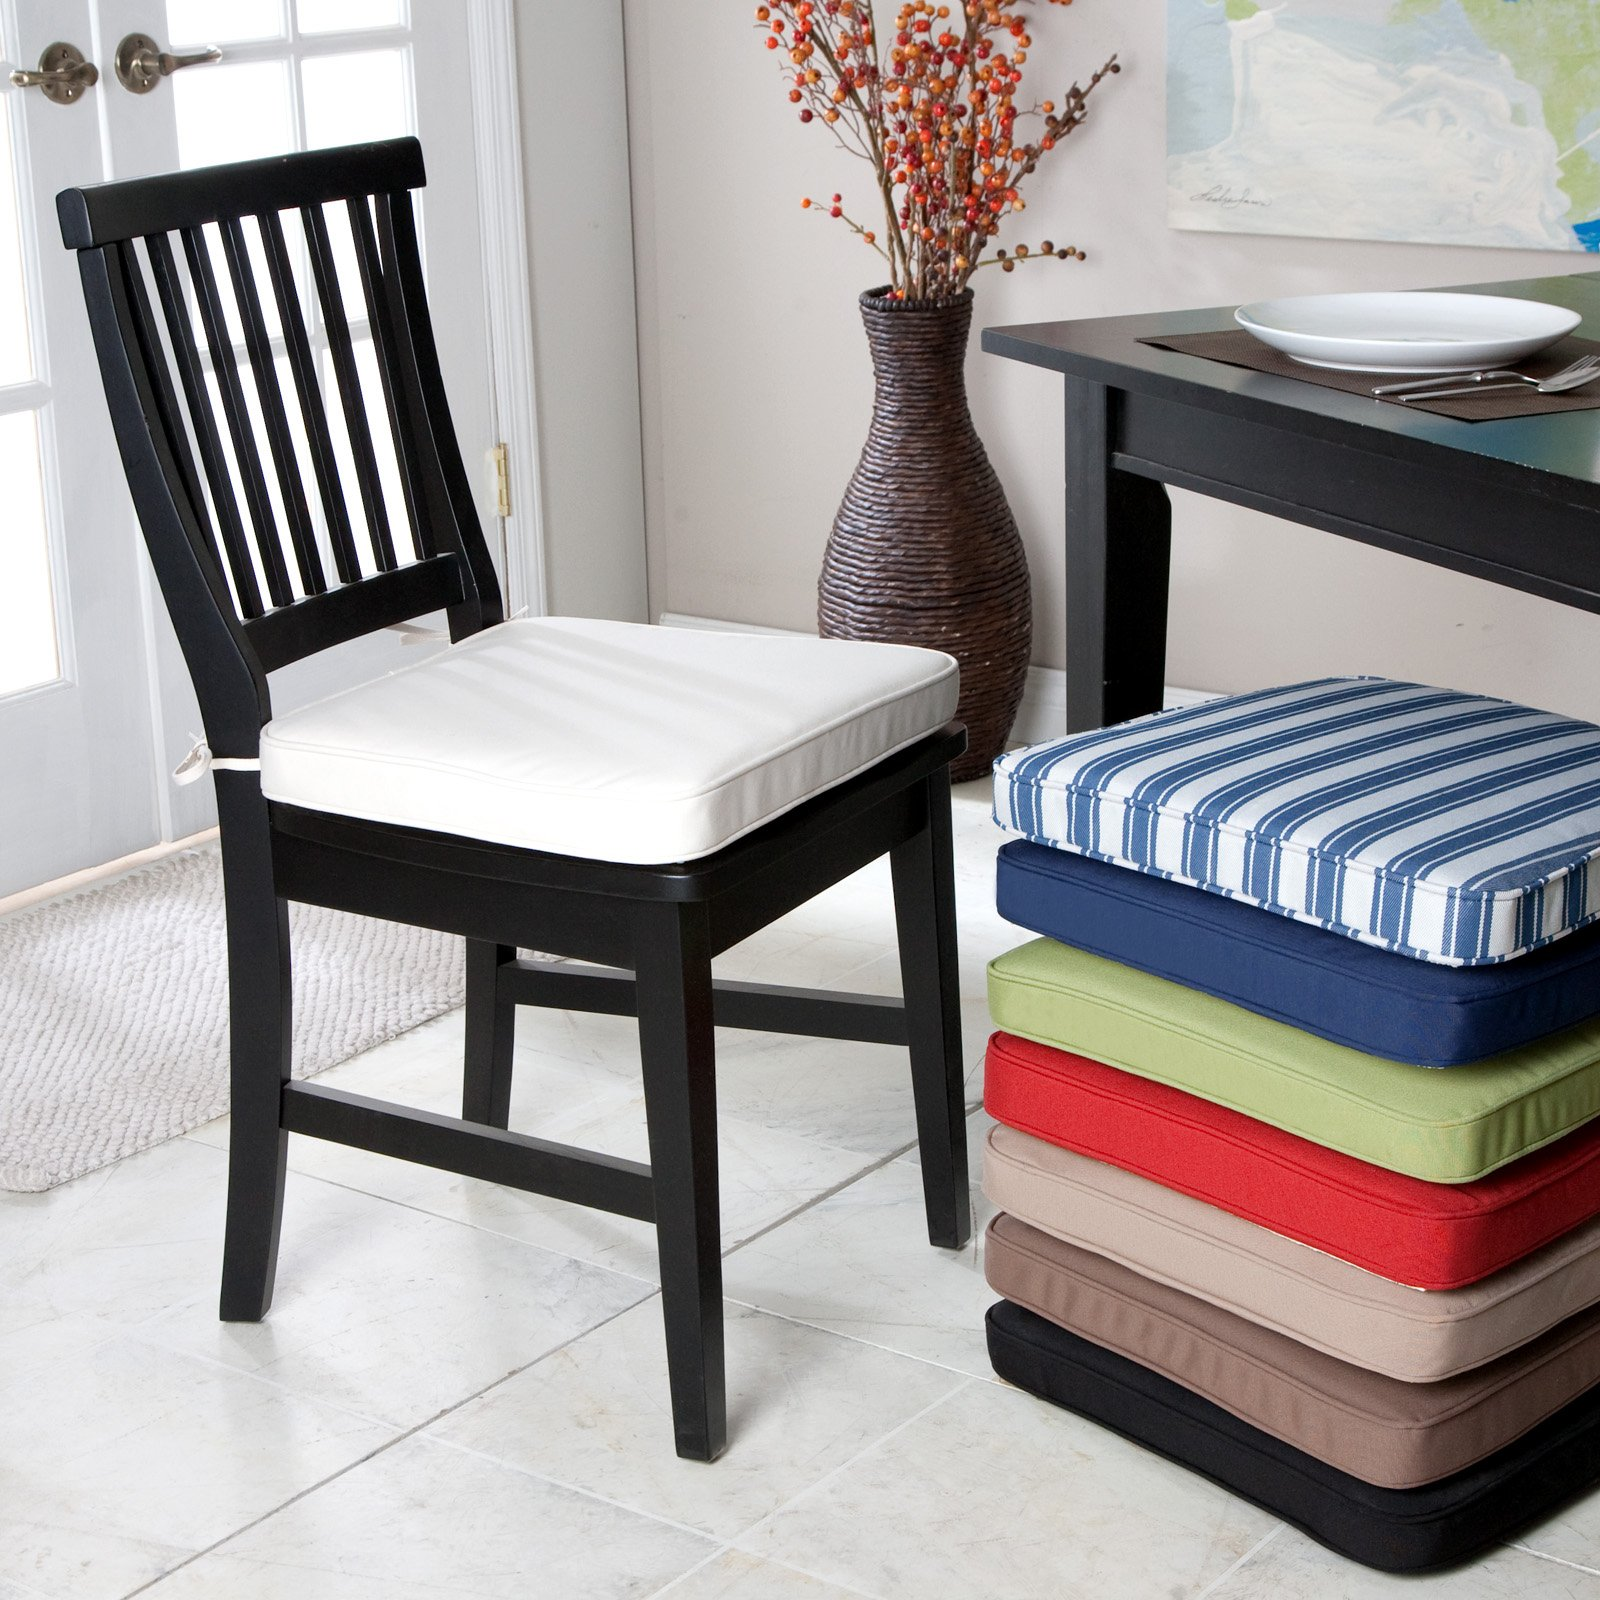 Seat cushions dining room chairs large and beautiful for Dining room chair cushions